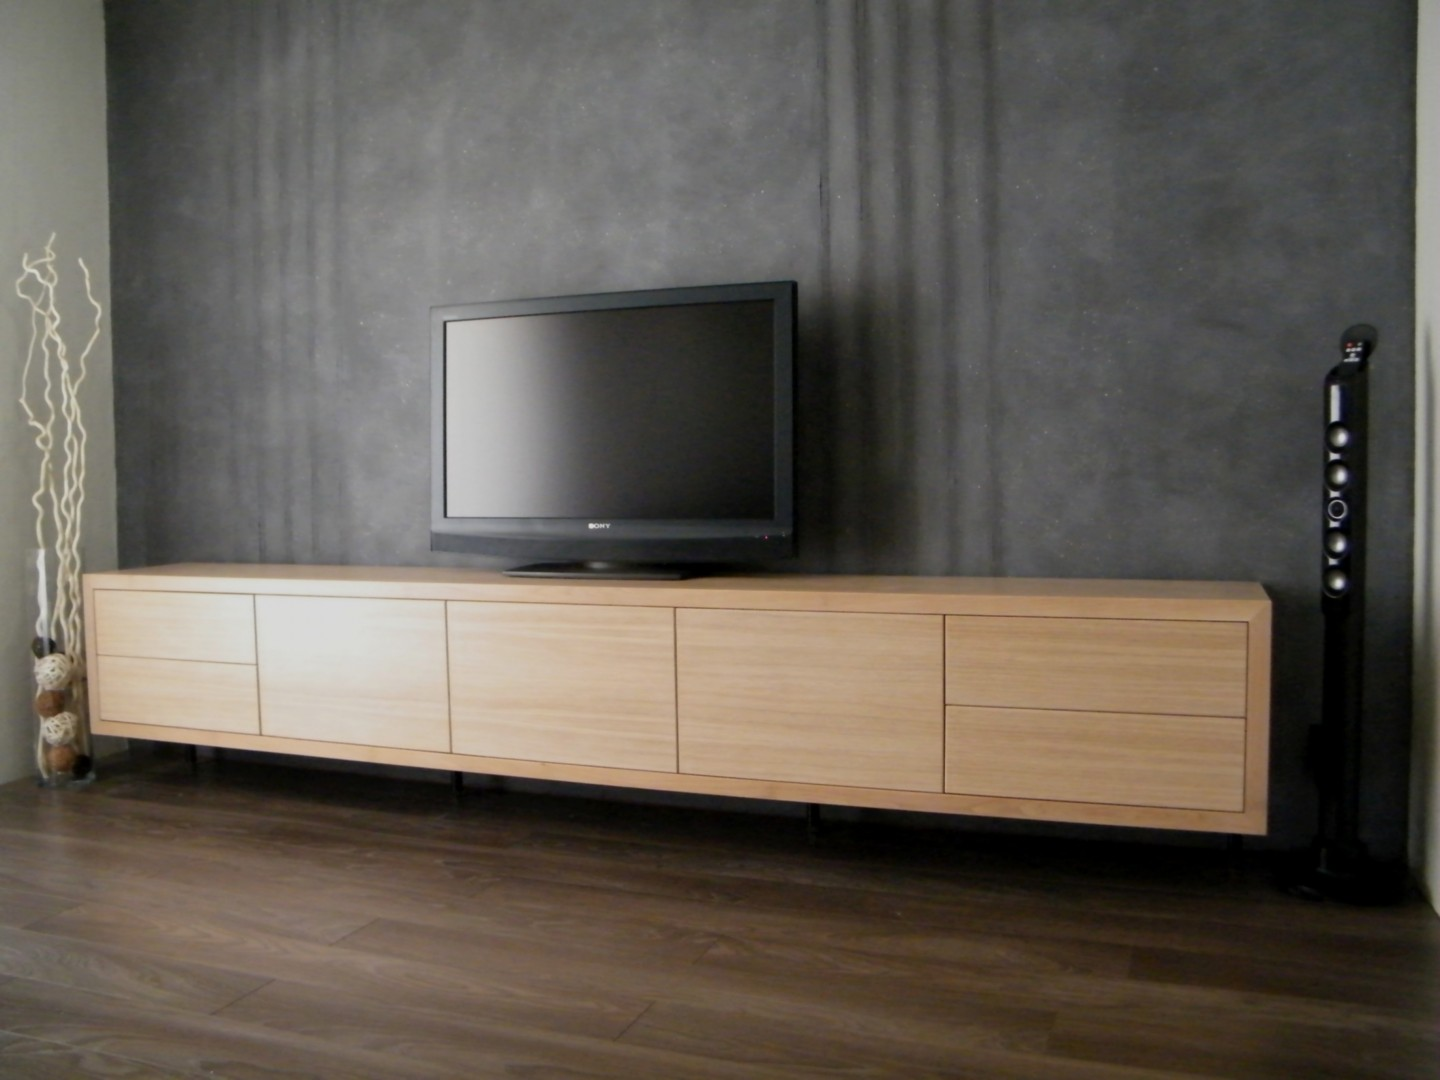 Meuble Hifi Tv Design Meuble Bas Hifi Design